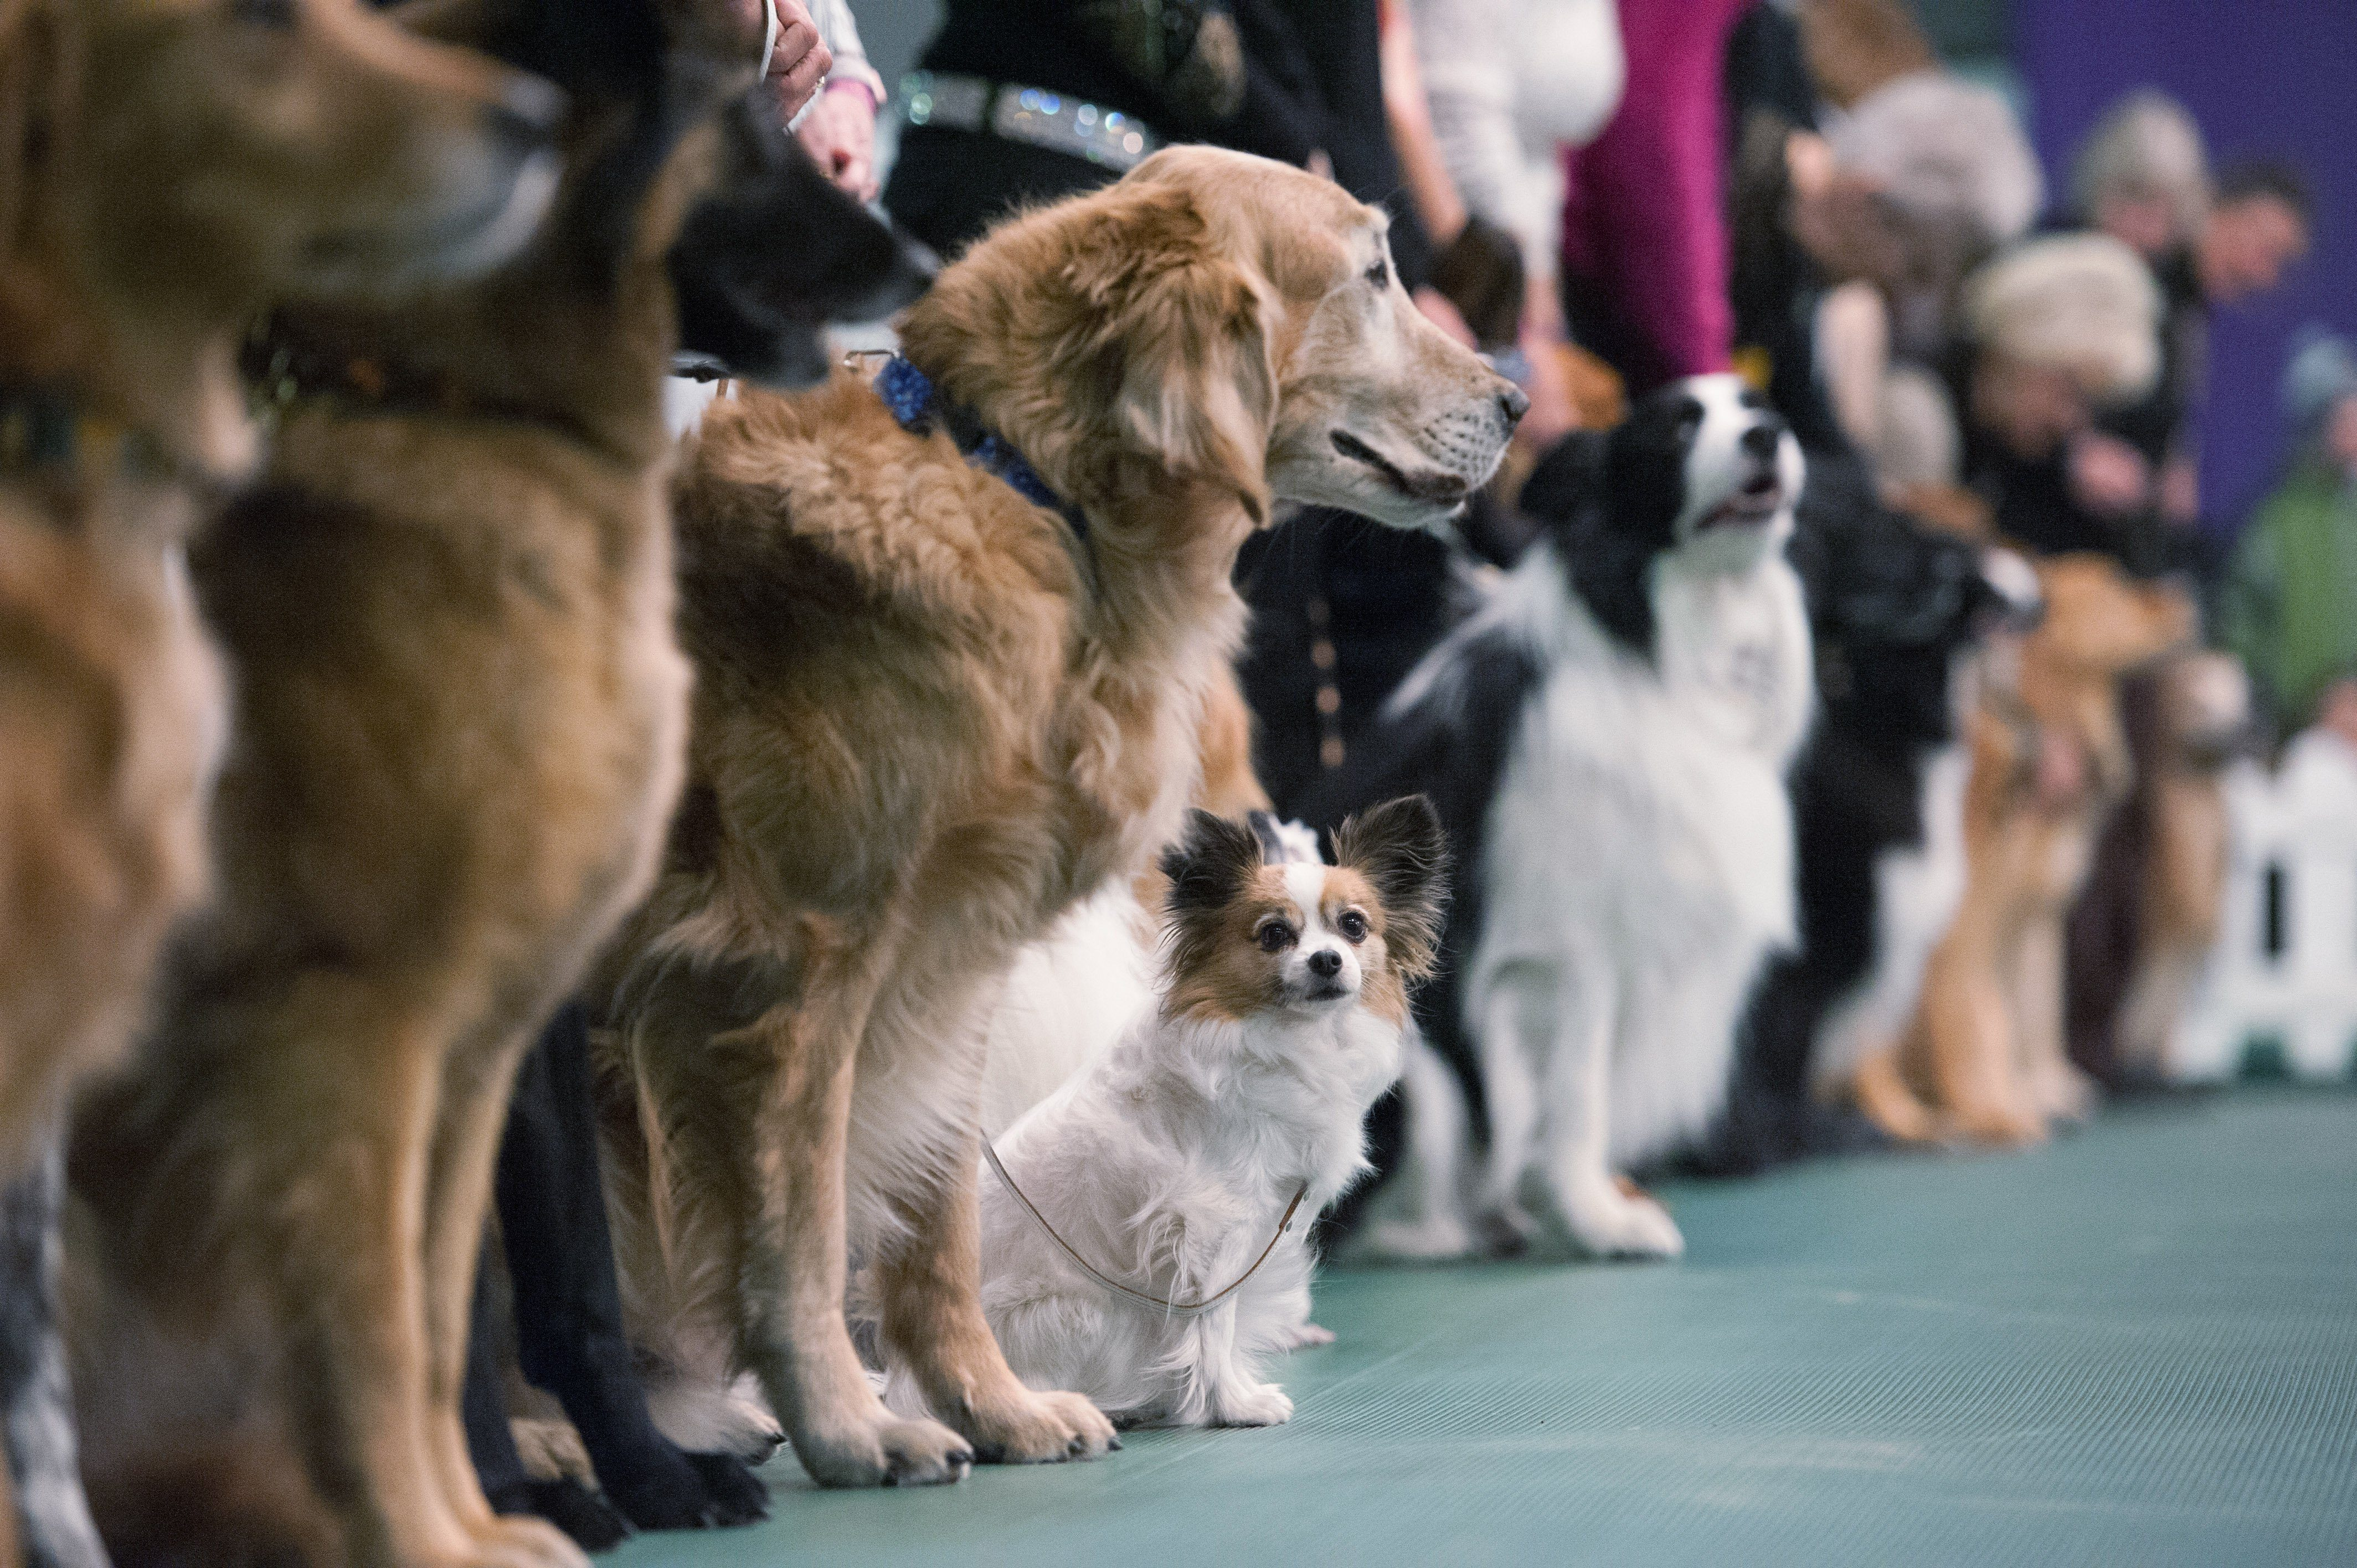 13 Facts About the Westminster Dog Show